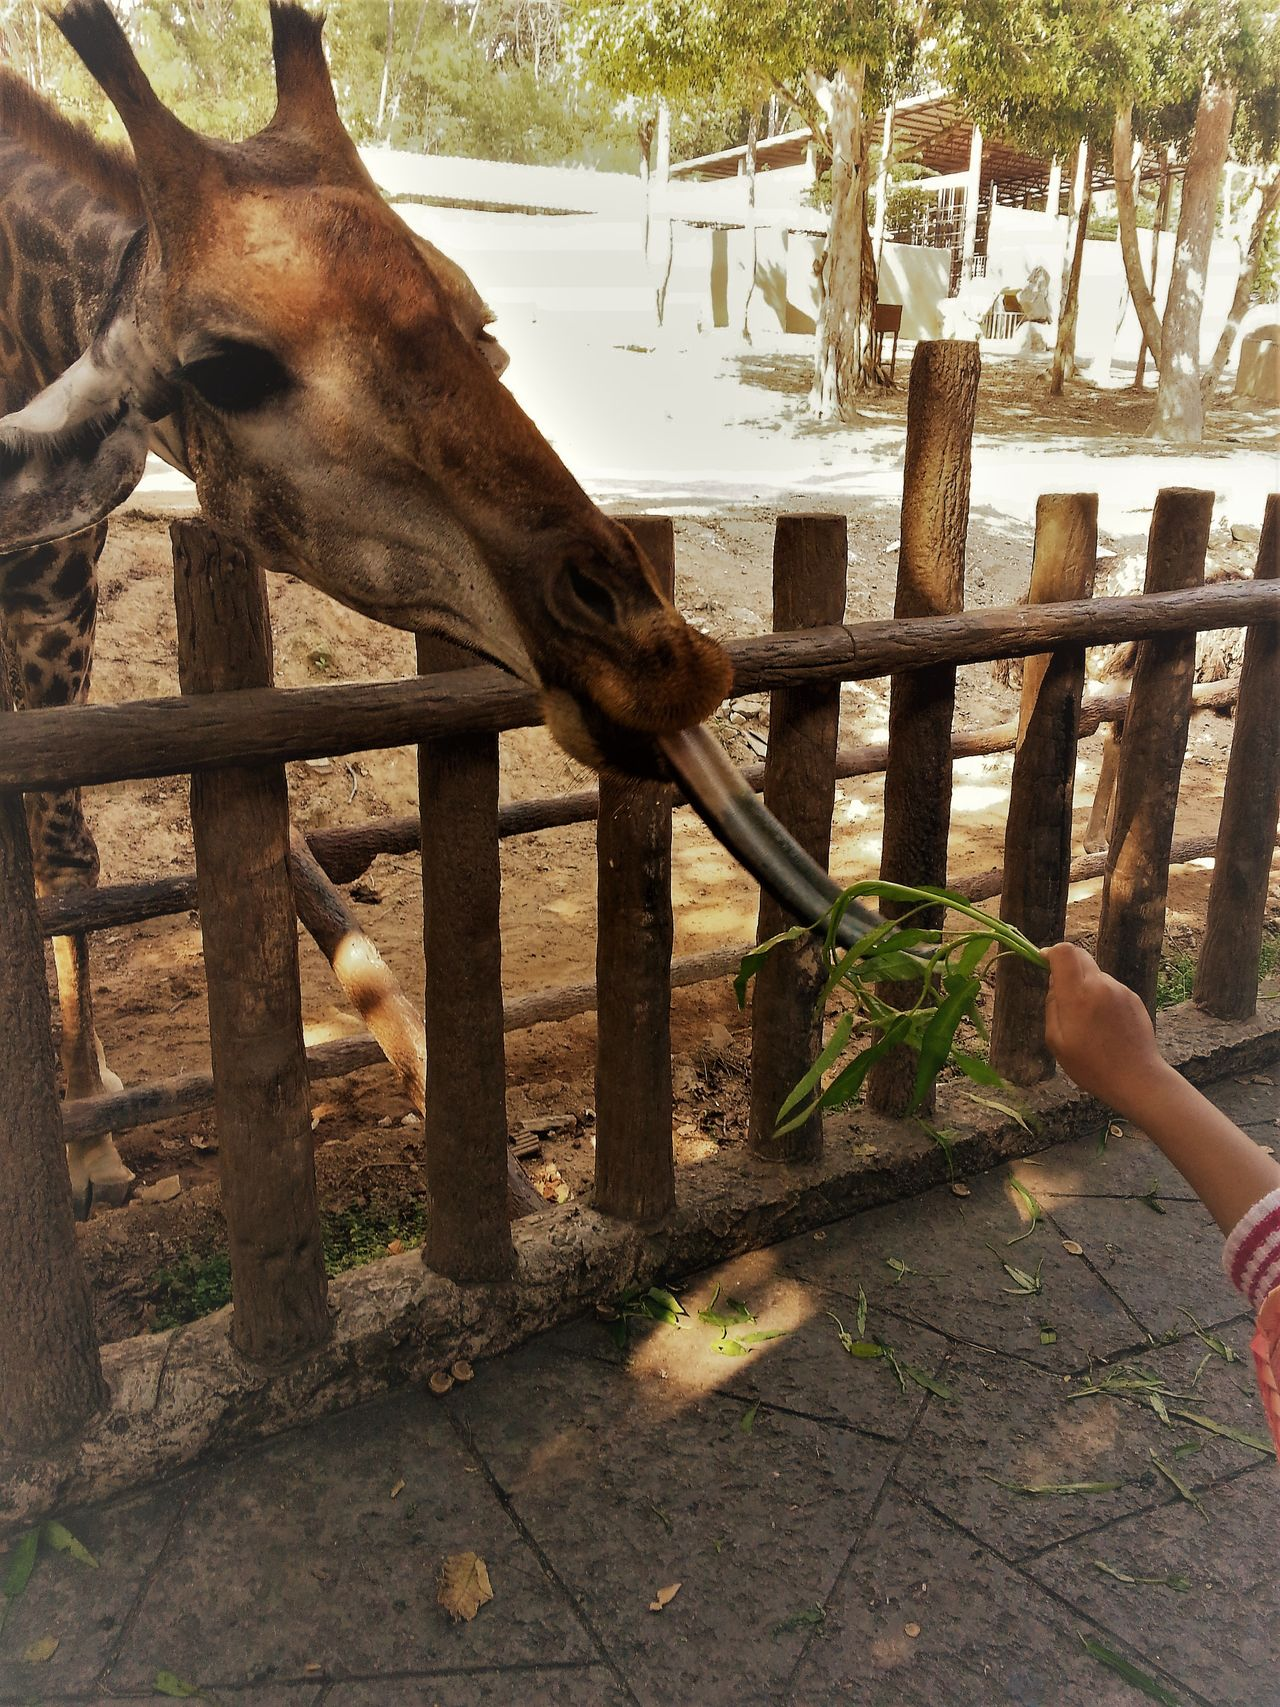 Animal Themes Chaingmaithailand Chiangmai Zoo EyeEm Gallery EyeEm Nature Lover Eyeemthailand Feeding Animals Giraffe North Outdoors Zoo